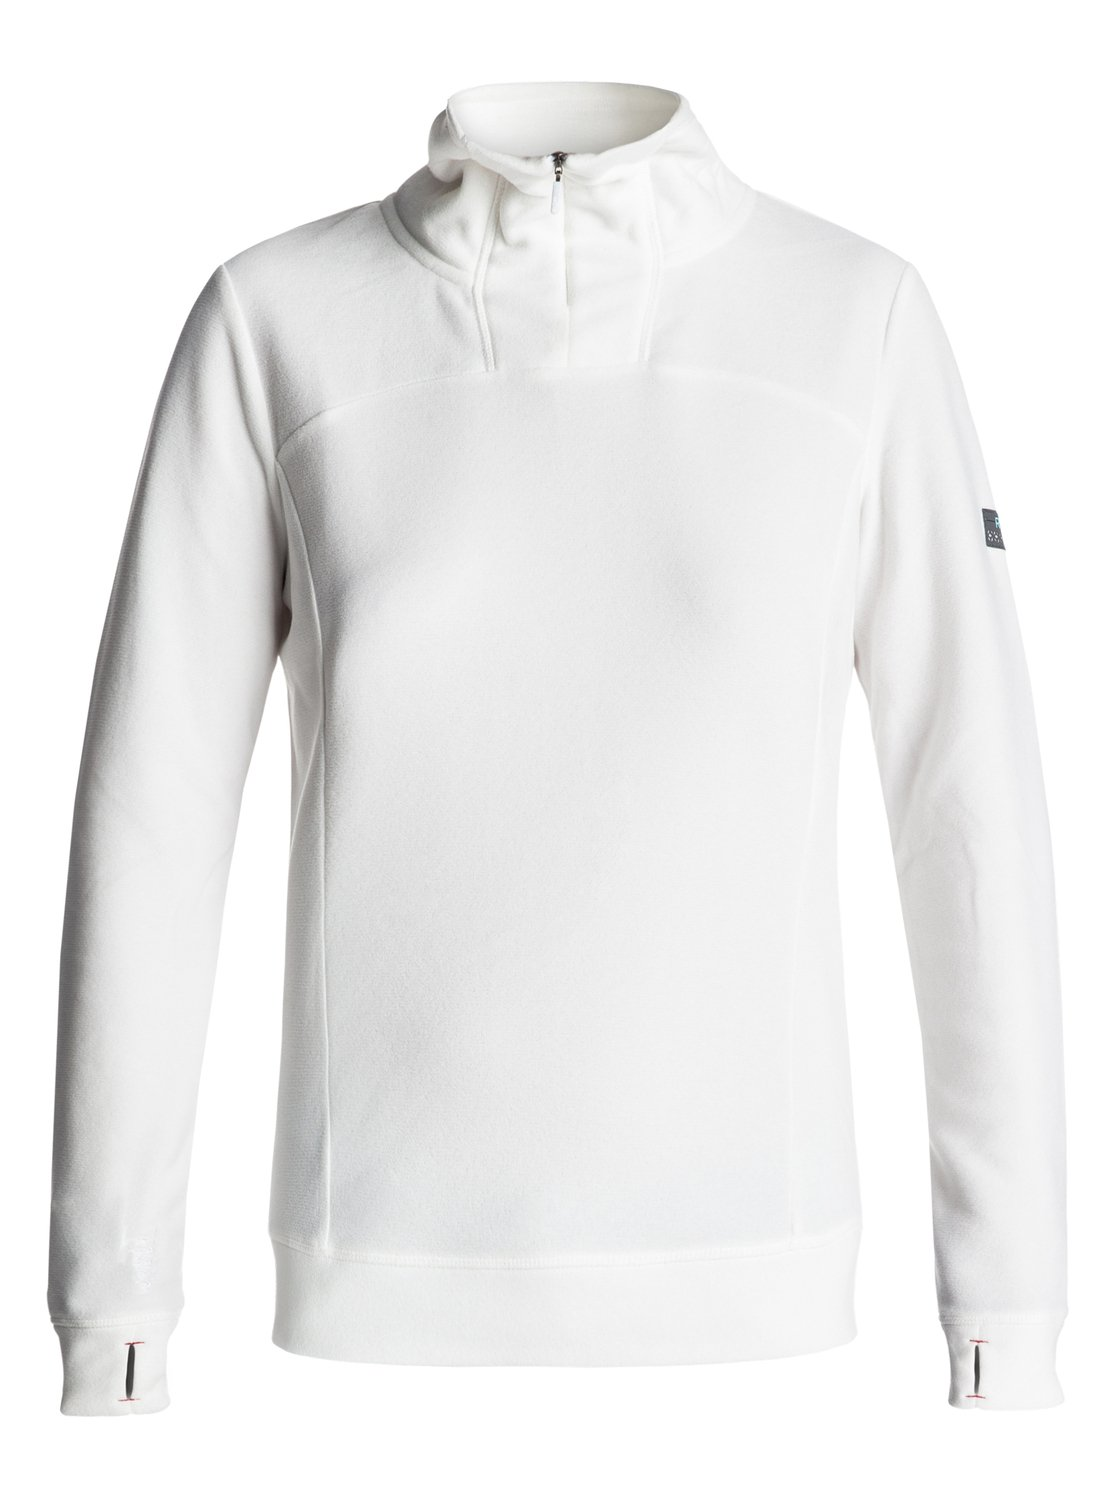 seconde couche ski femme roxy drifted white